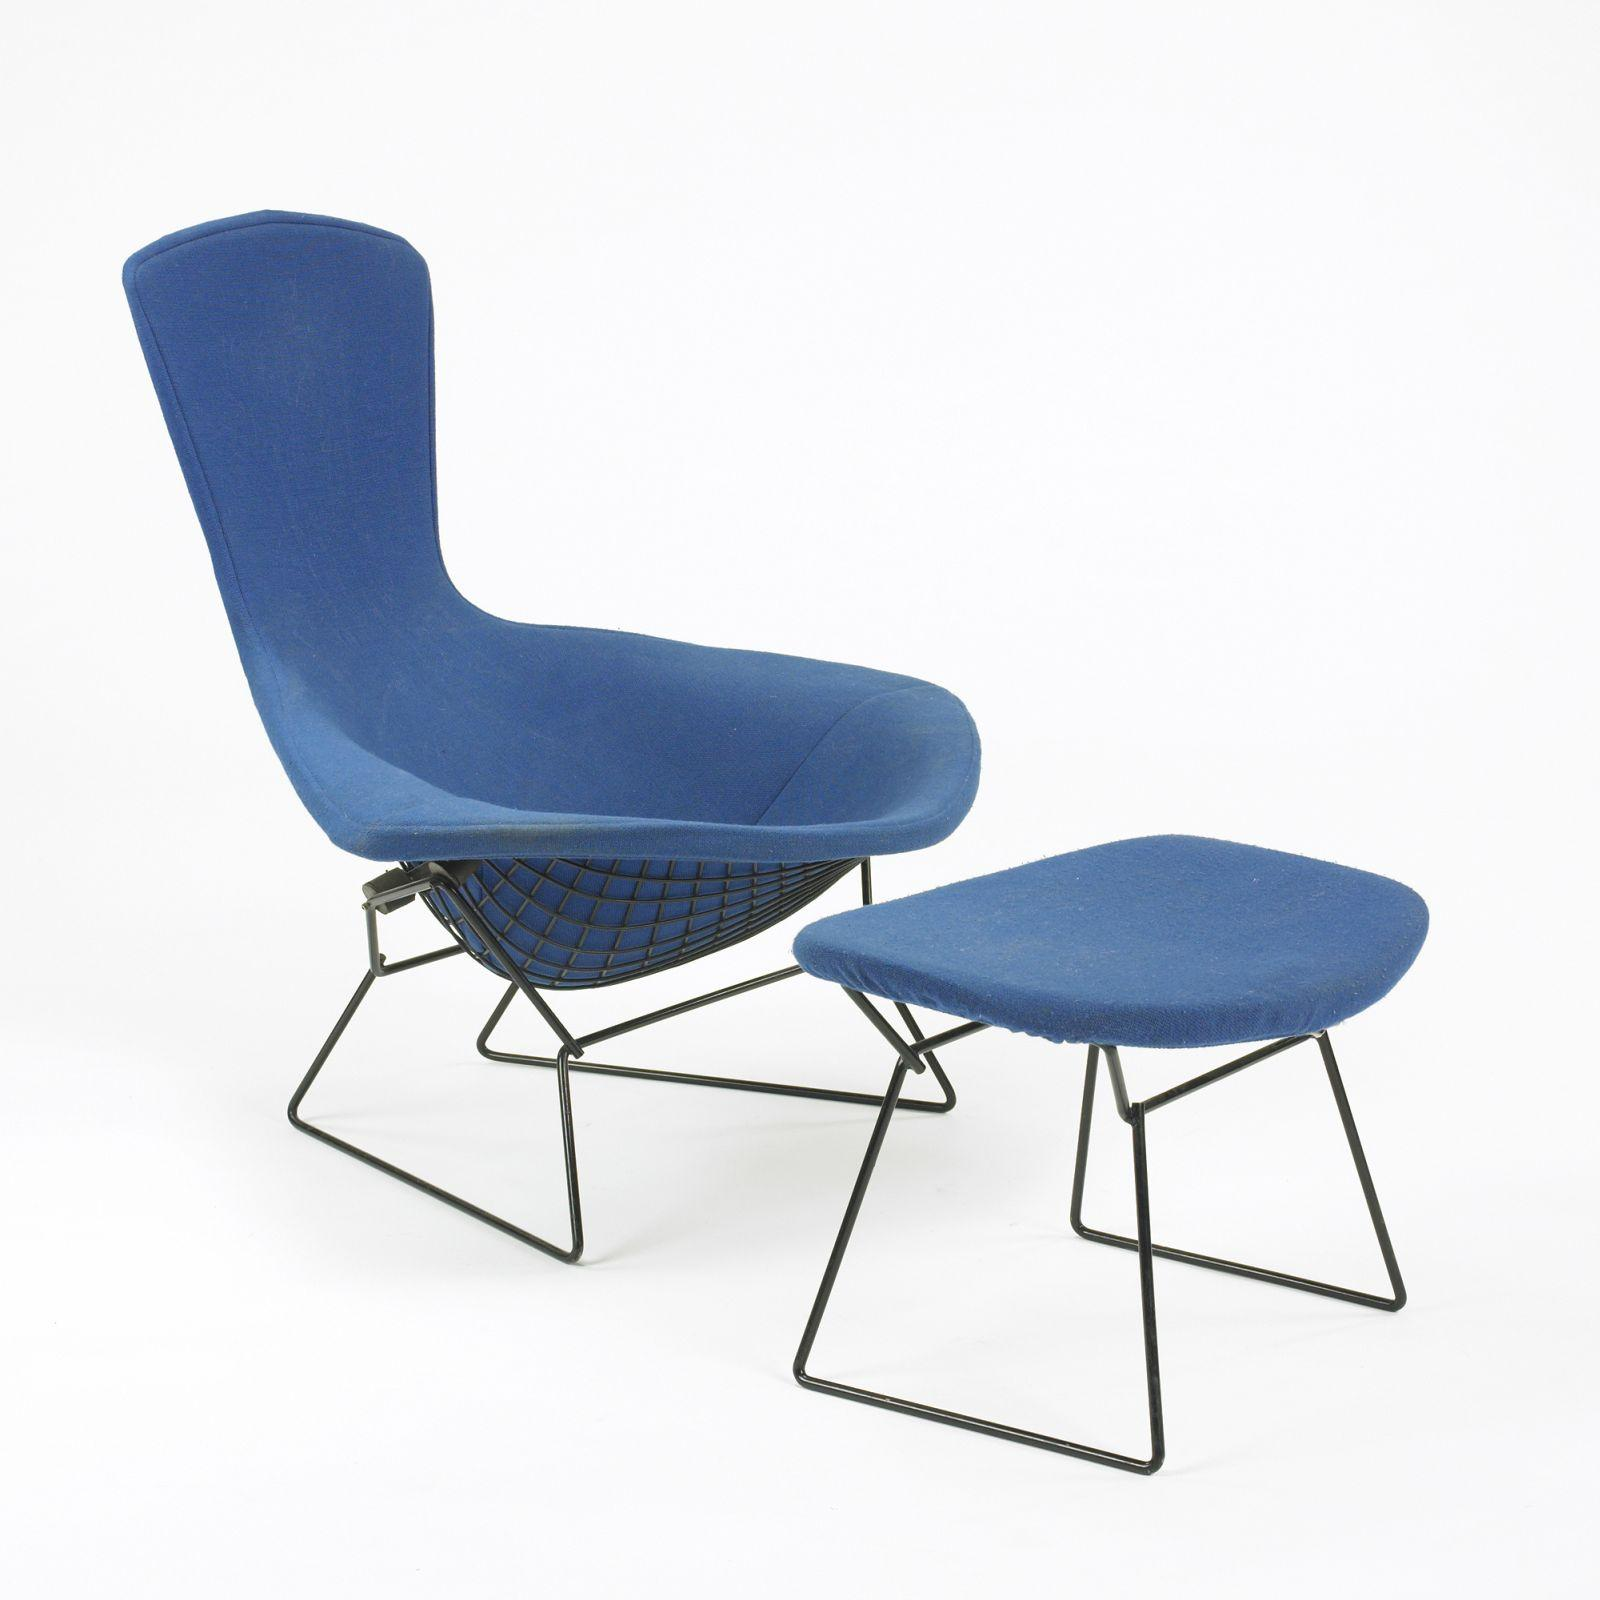 sc 1 st  iCollector.com & Harry Bertoia Bird chair and ottoman